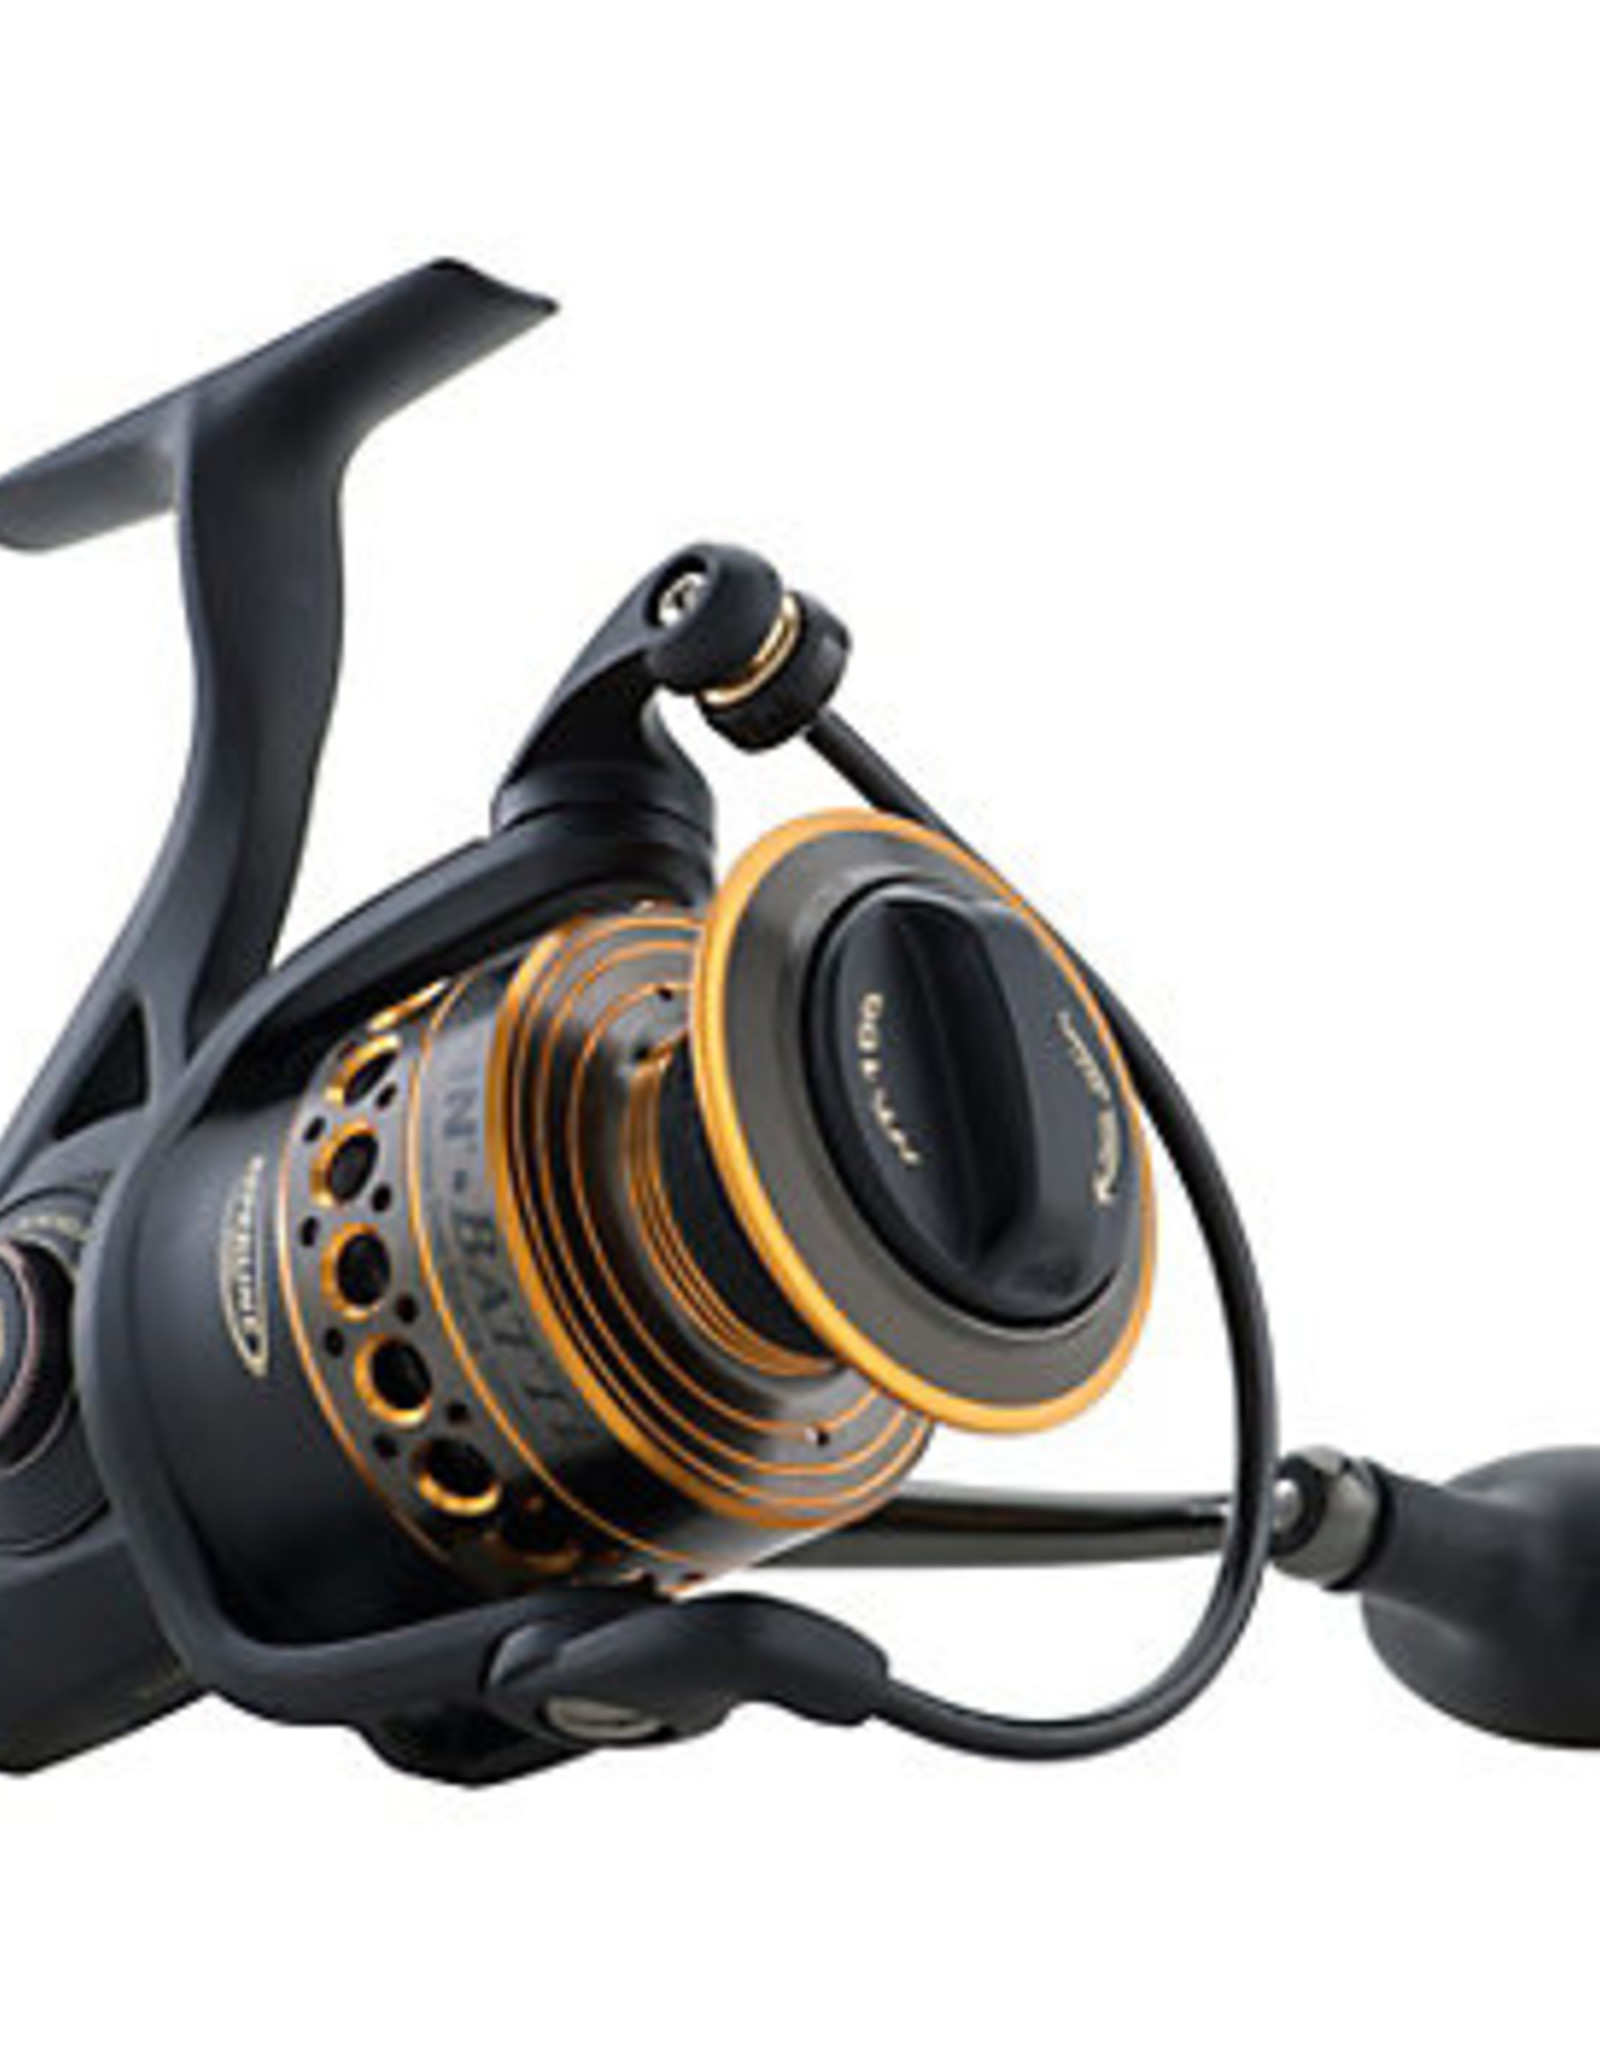 Penn Penn Battle II Spinning Reel